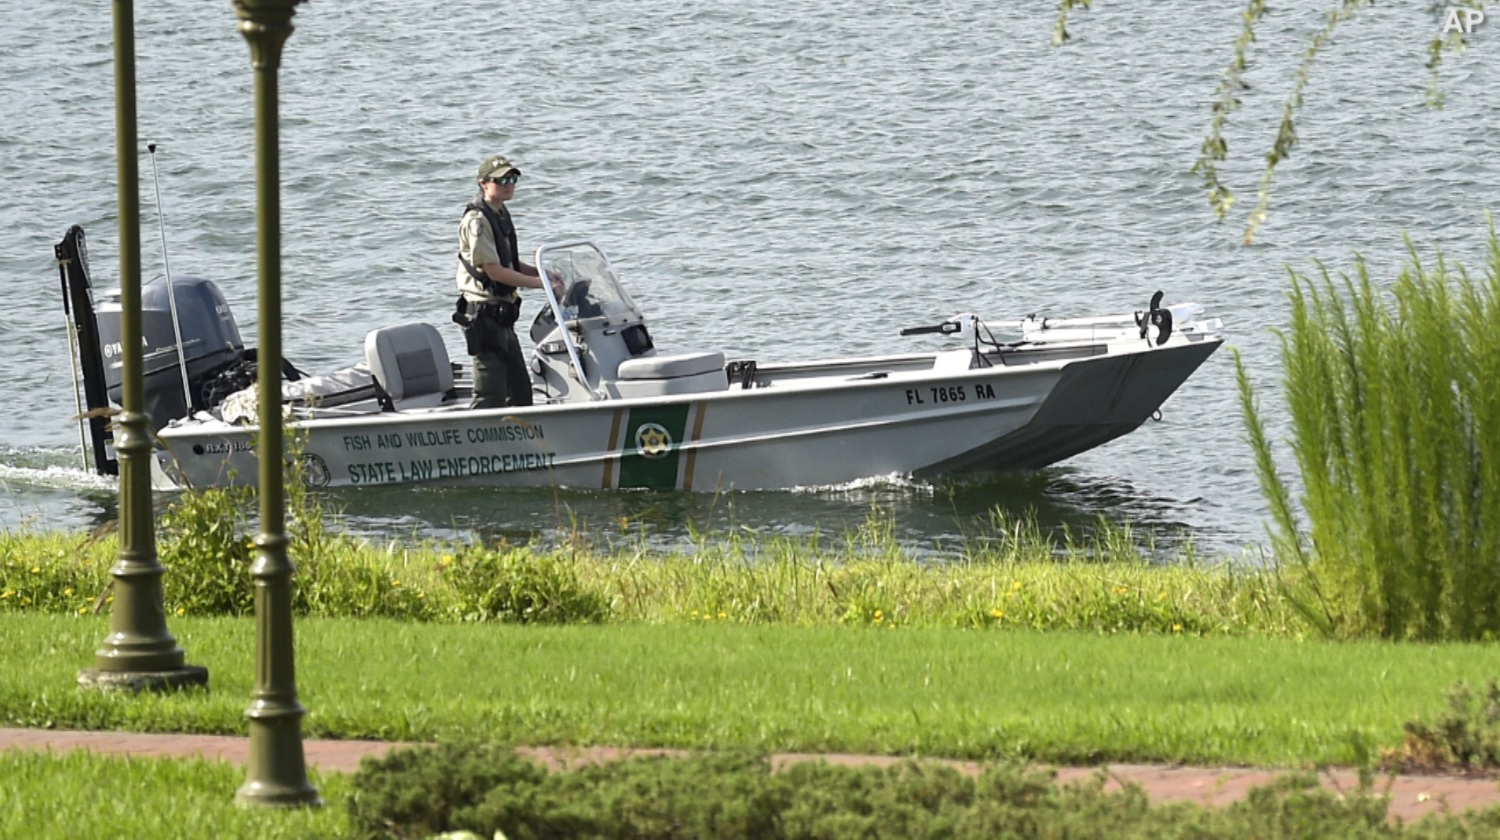 Toddler's body found 'intact' after alligator attack